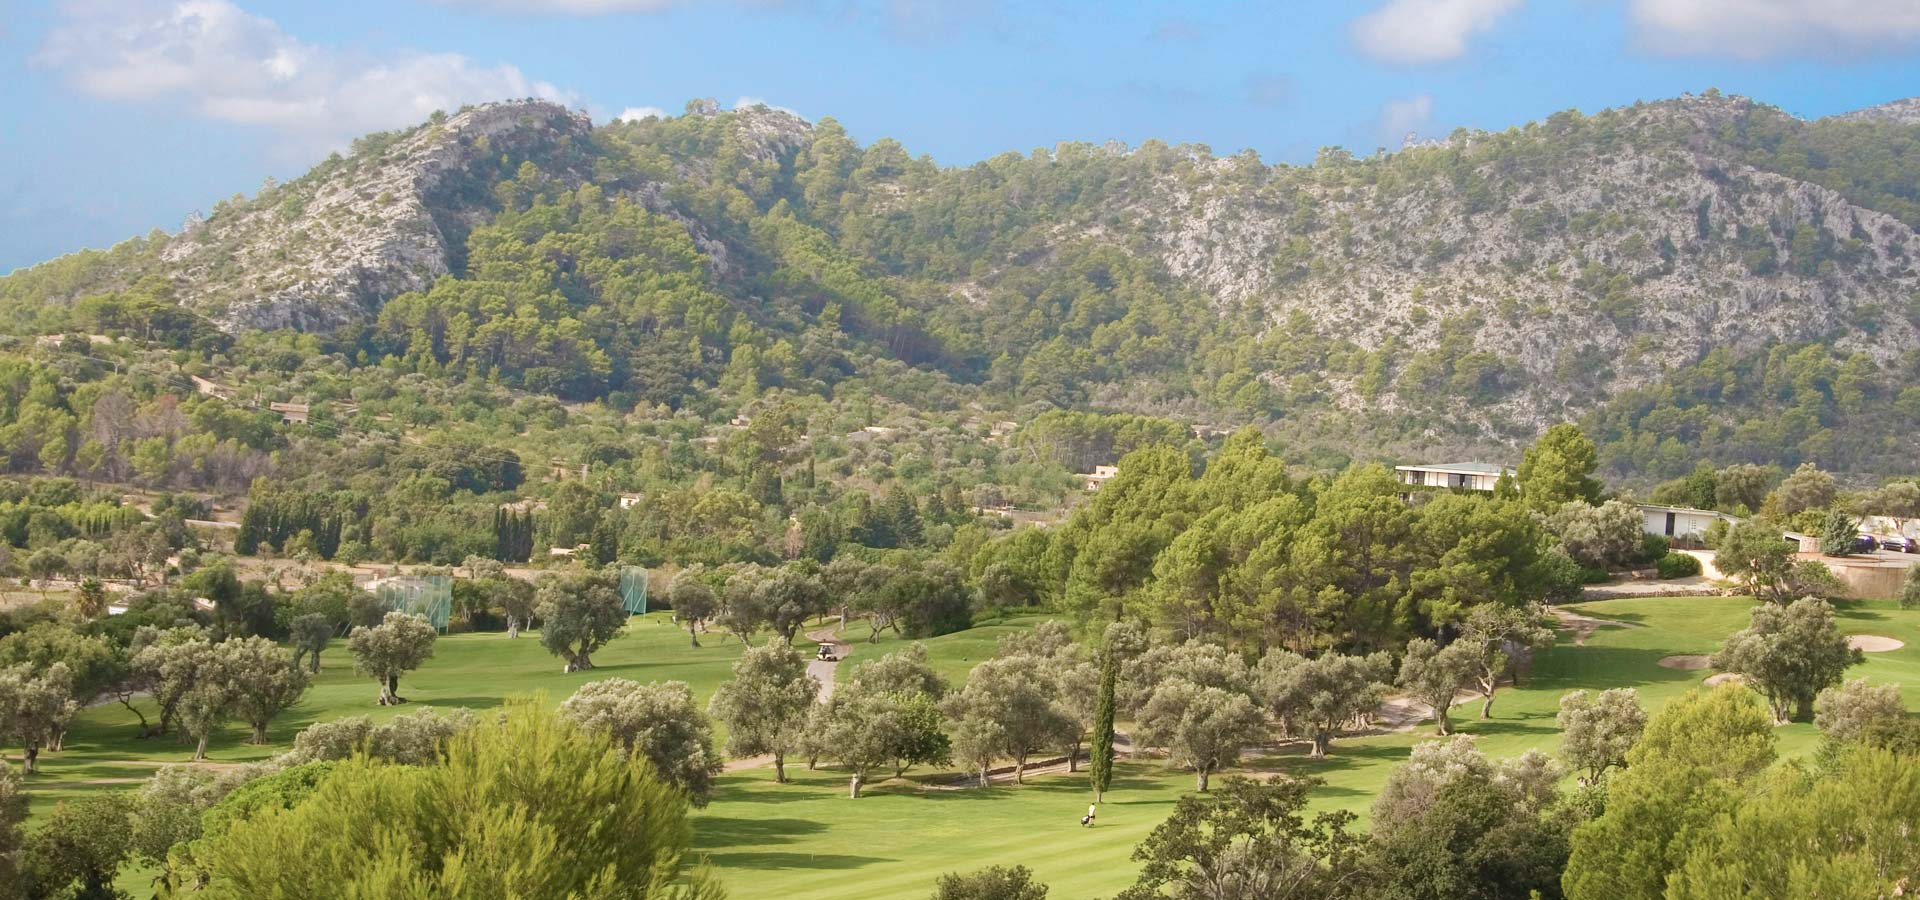 Golf Pollensa property owners enjoy the best golfing time with exclusive views of the course from local villas.